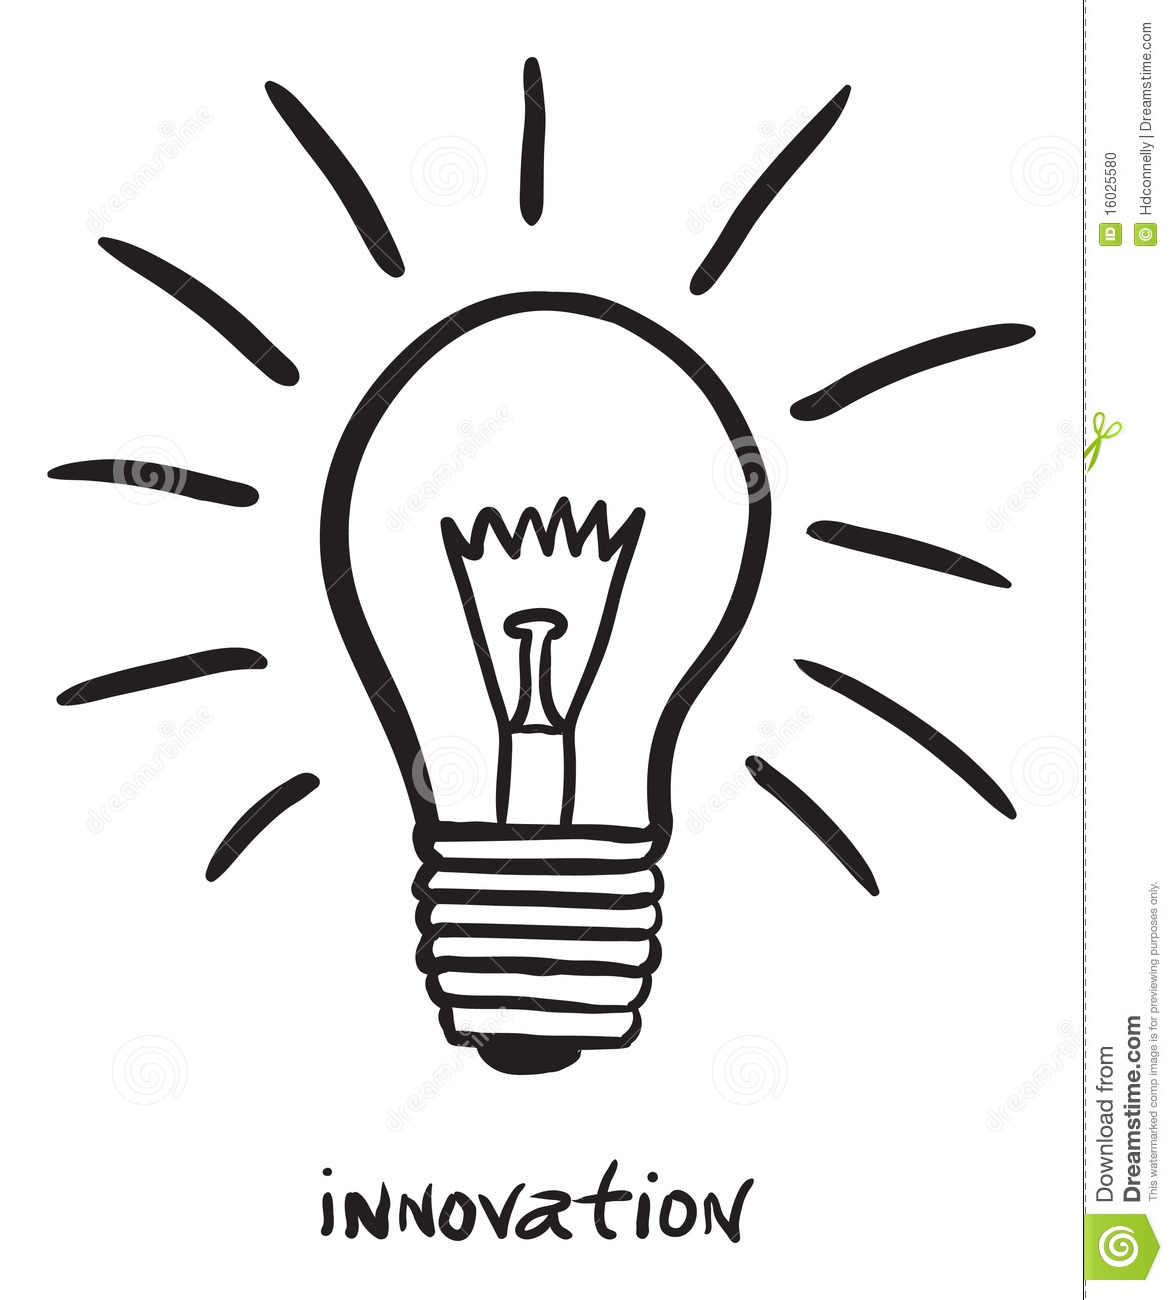 innovation doodle stock illustration  illustration of